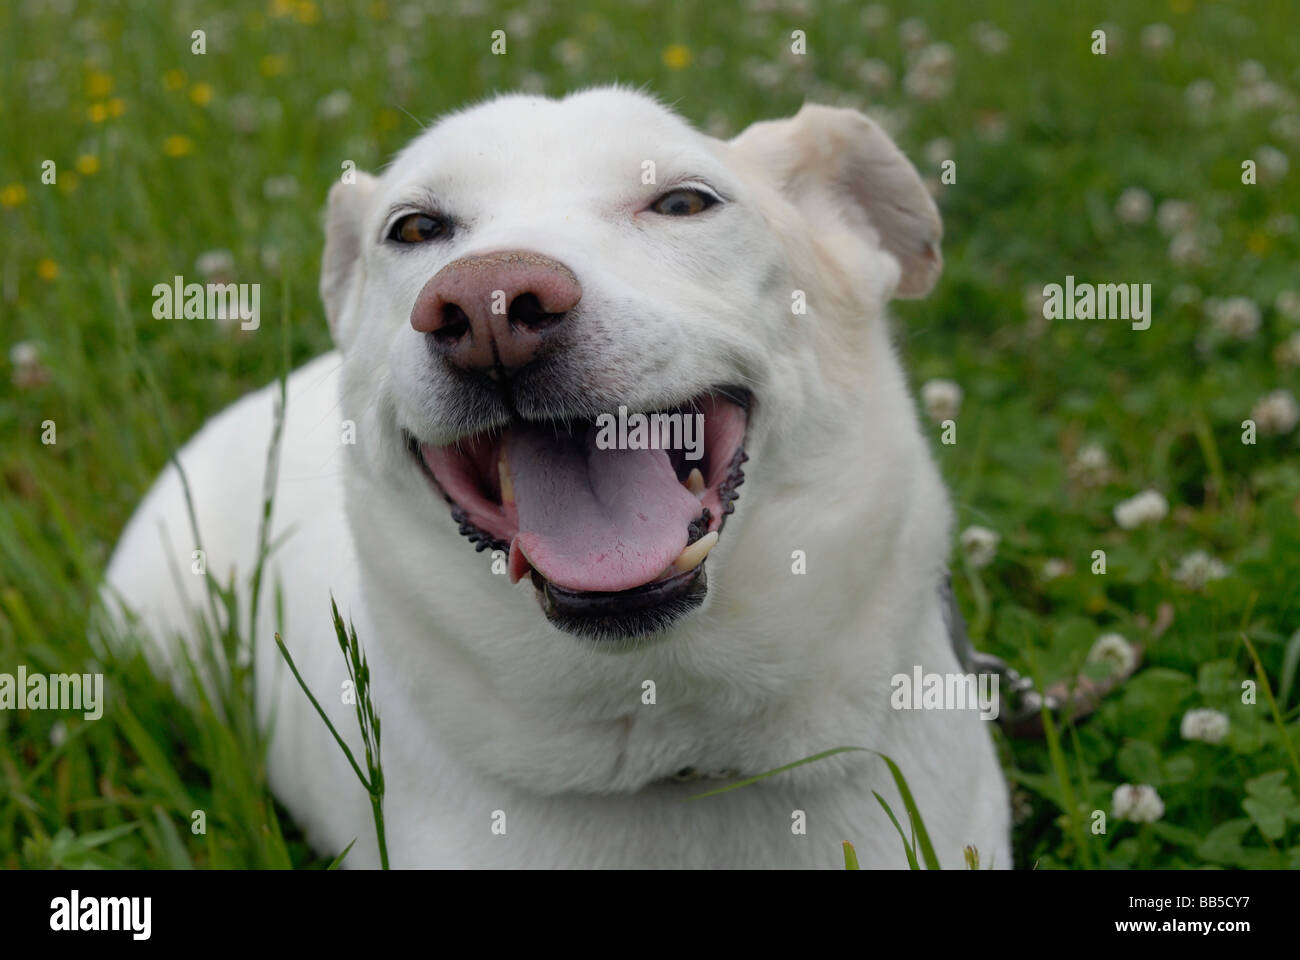 Happy dog - Stock Image